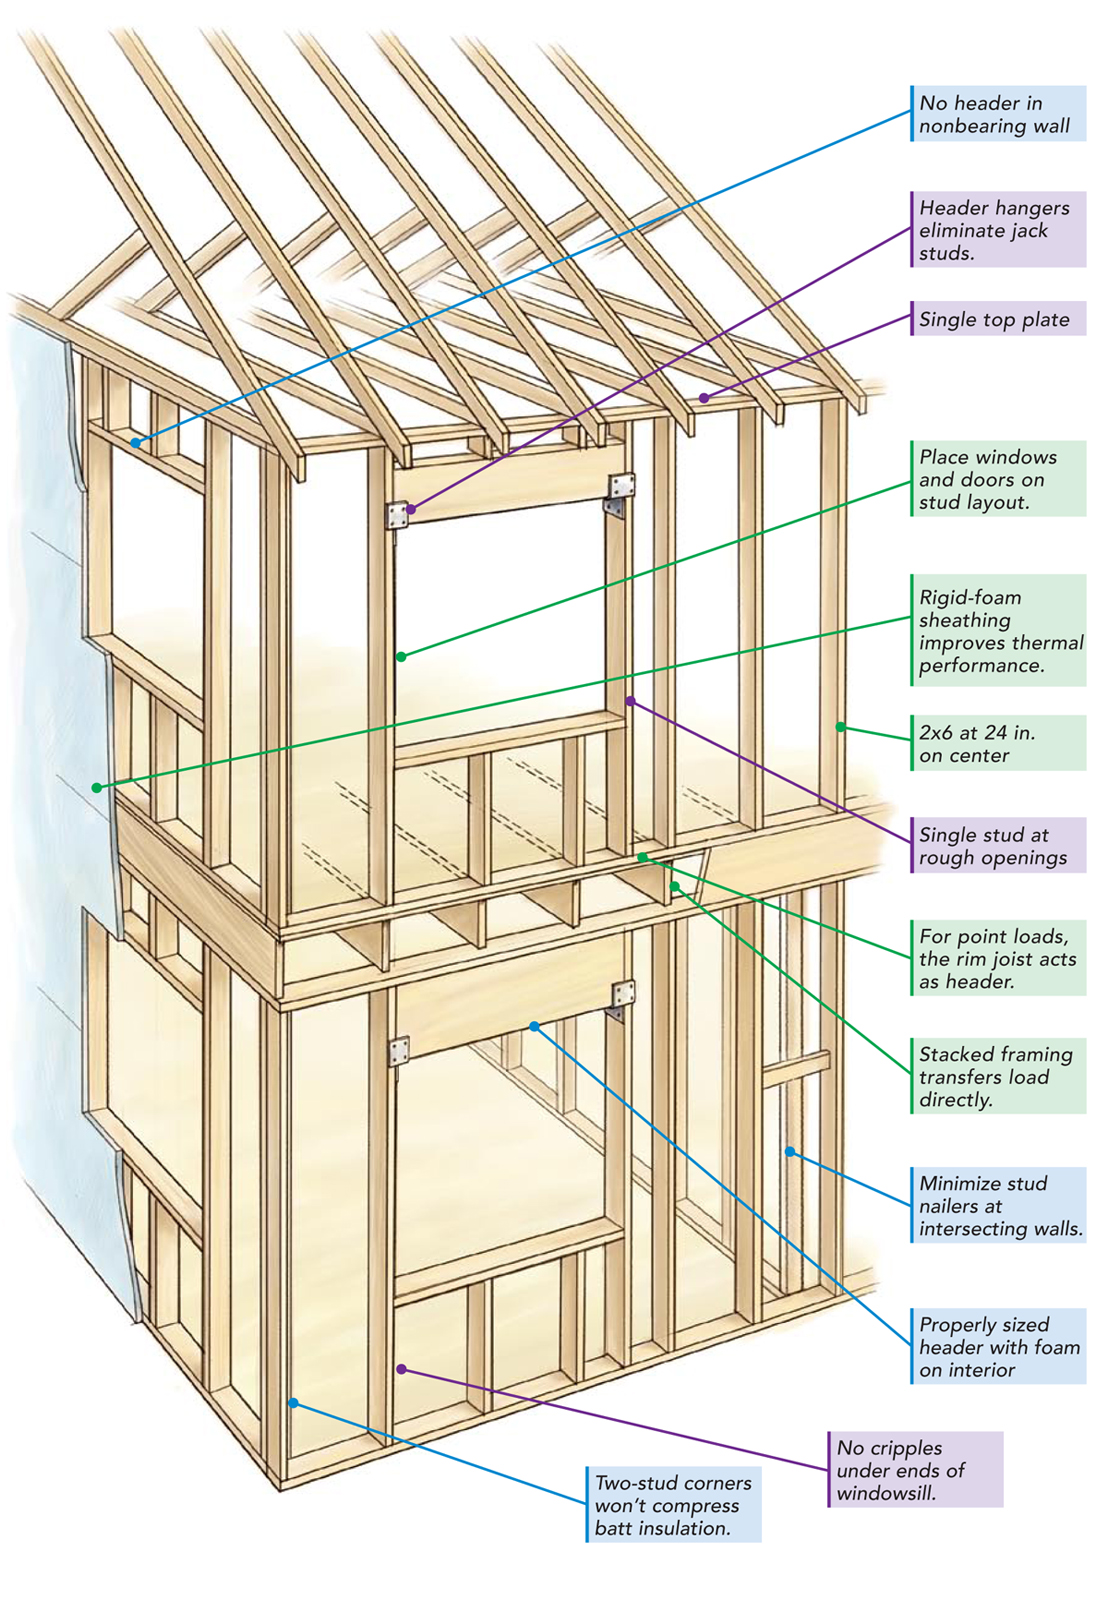 24 in on center framing fine homebuilding for Fine home building